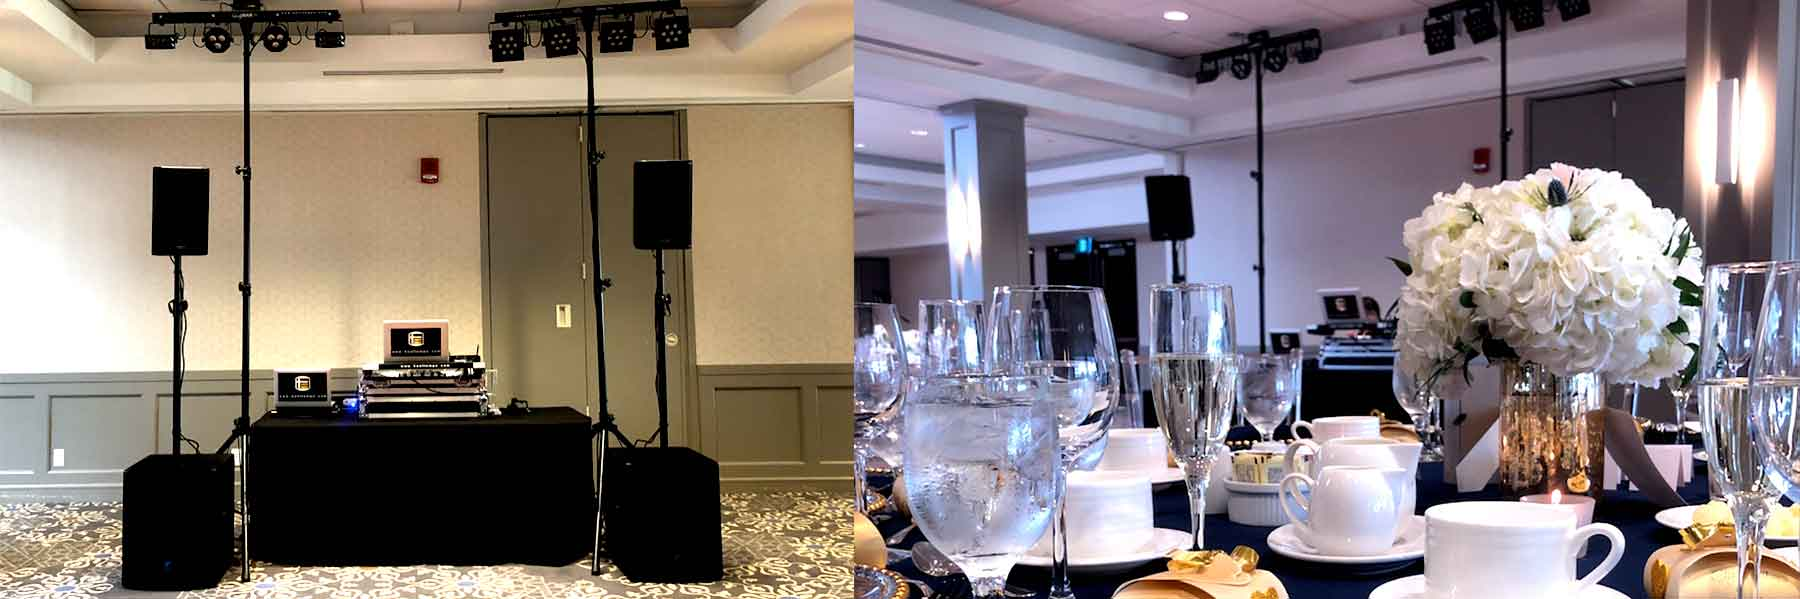 Bayview-Golf-ThornHill-Wedding-DJ-Set-up-&-Decor